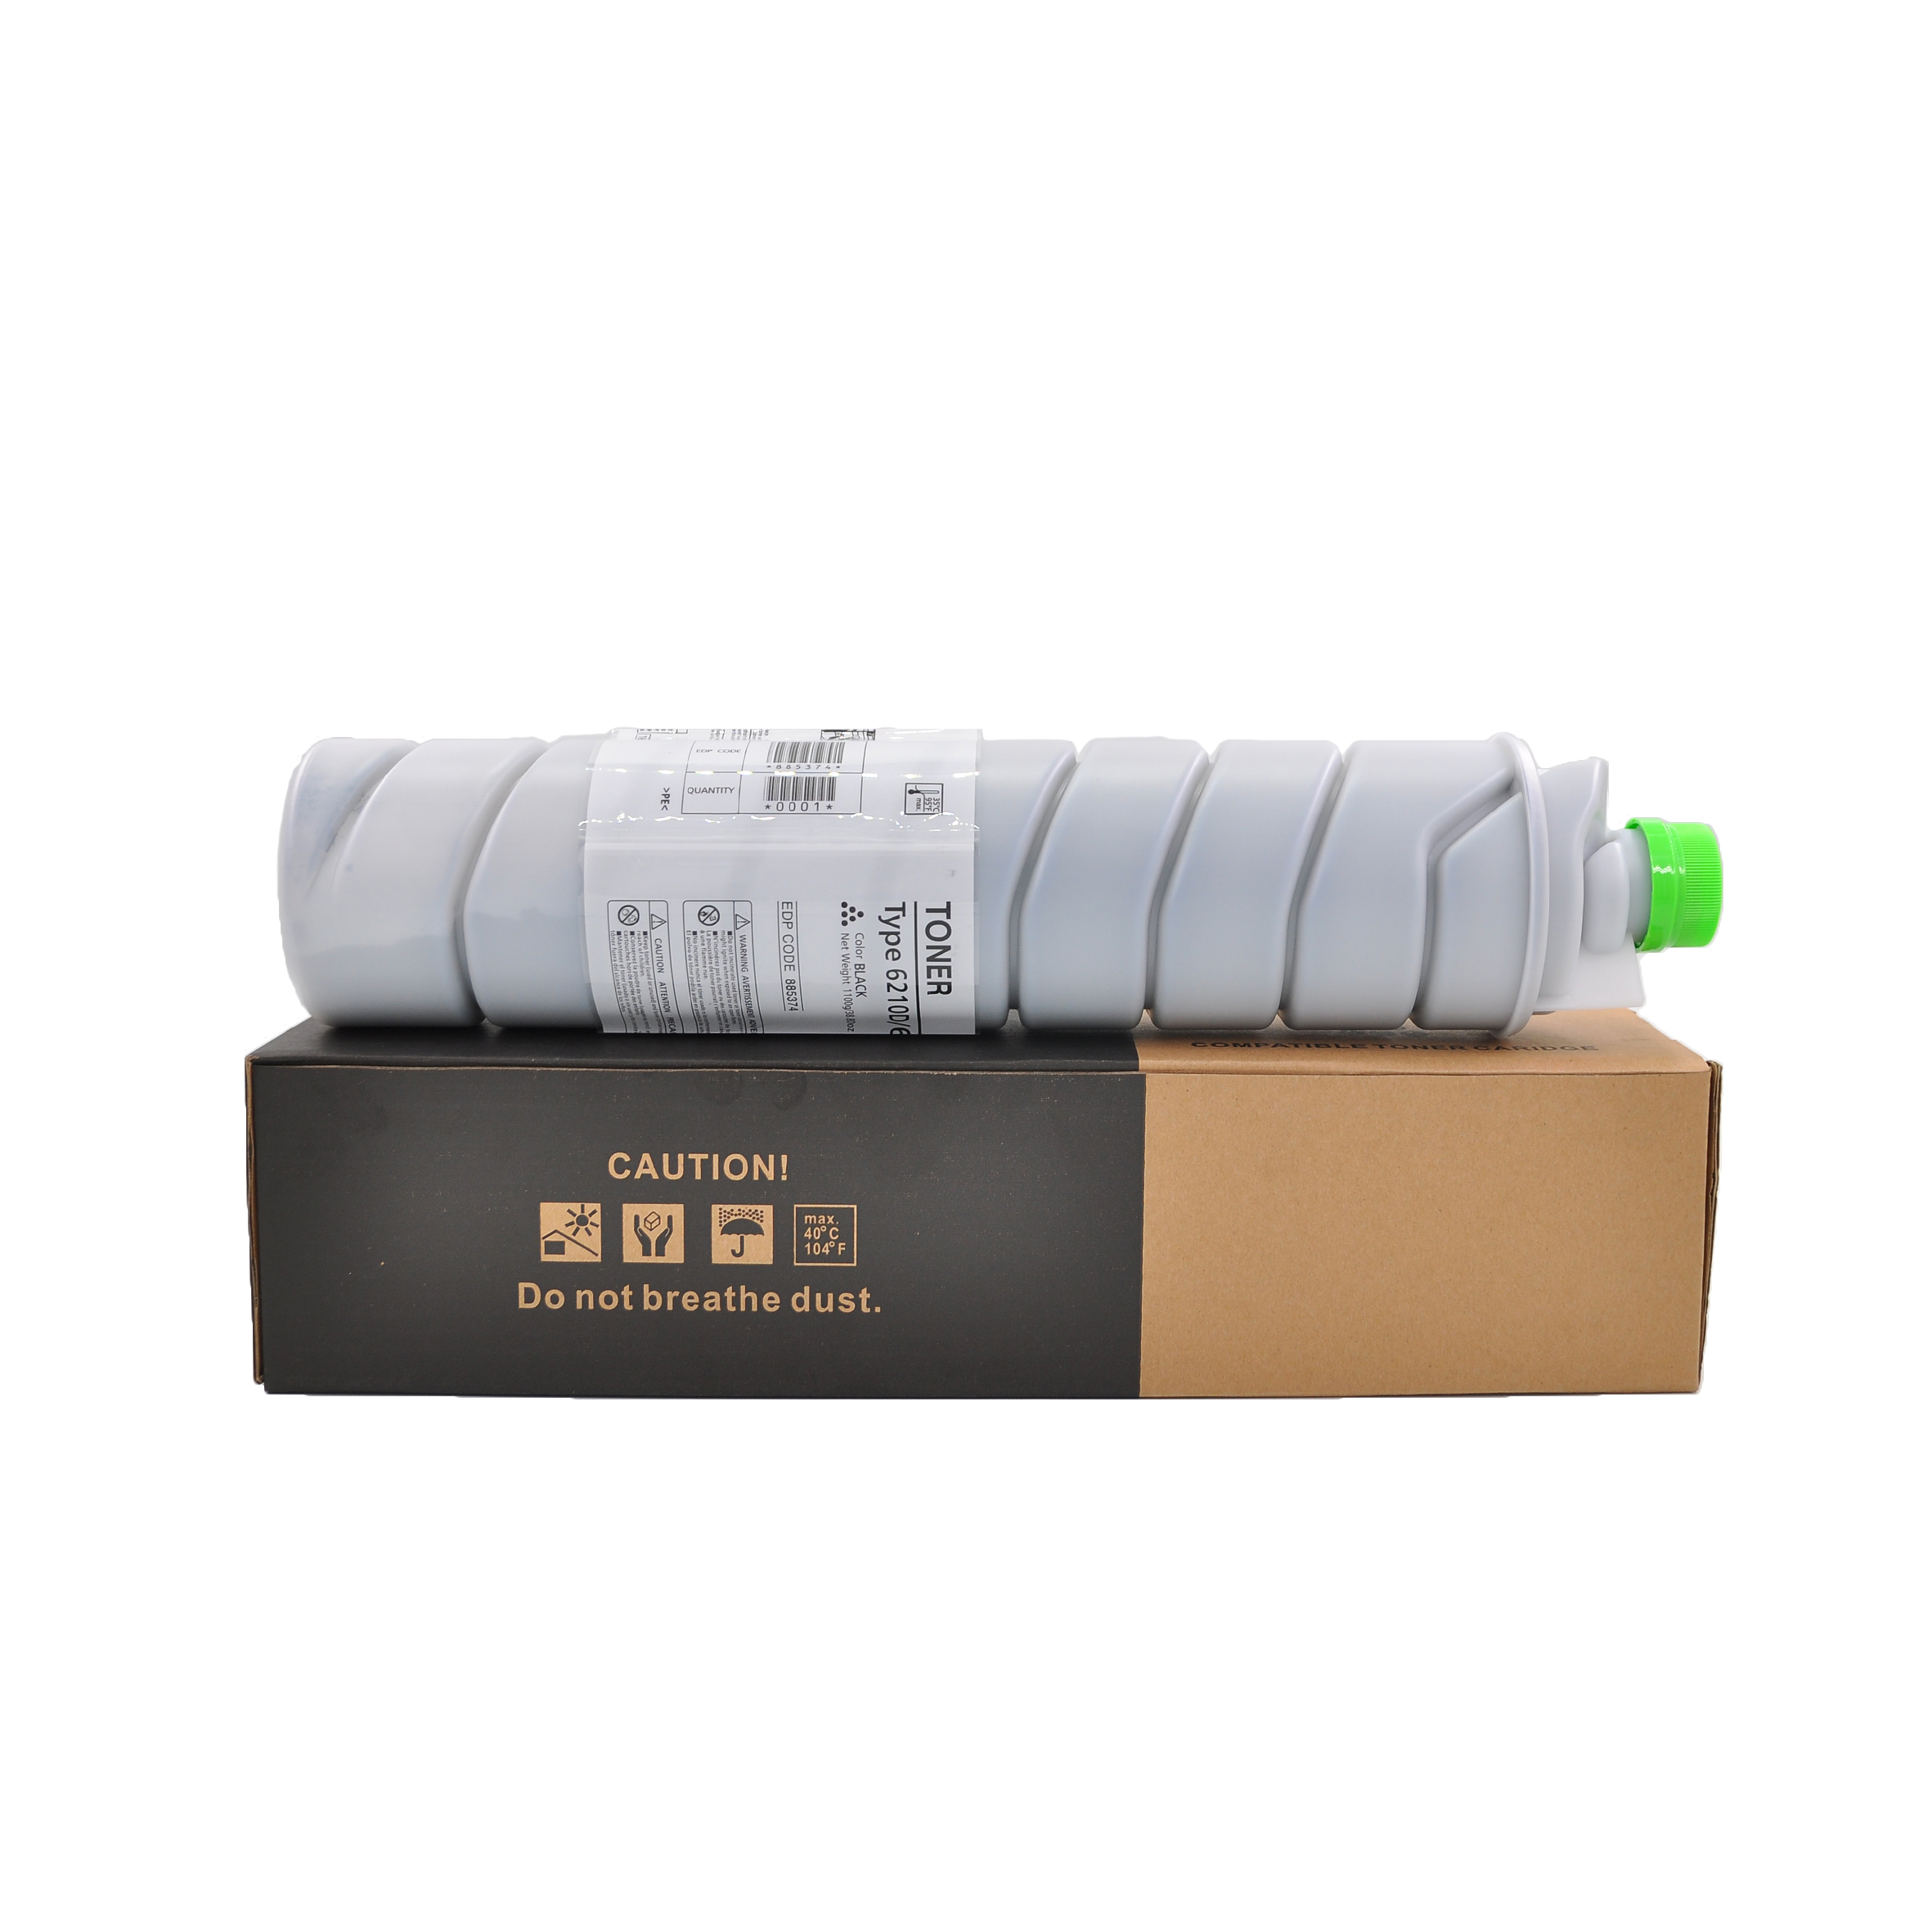 Compatible 6210d copier toner cartridge for use in Ricoh 1075 5500 7500 Featured Image